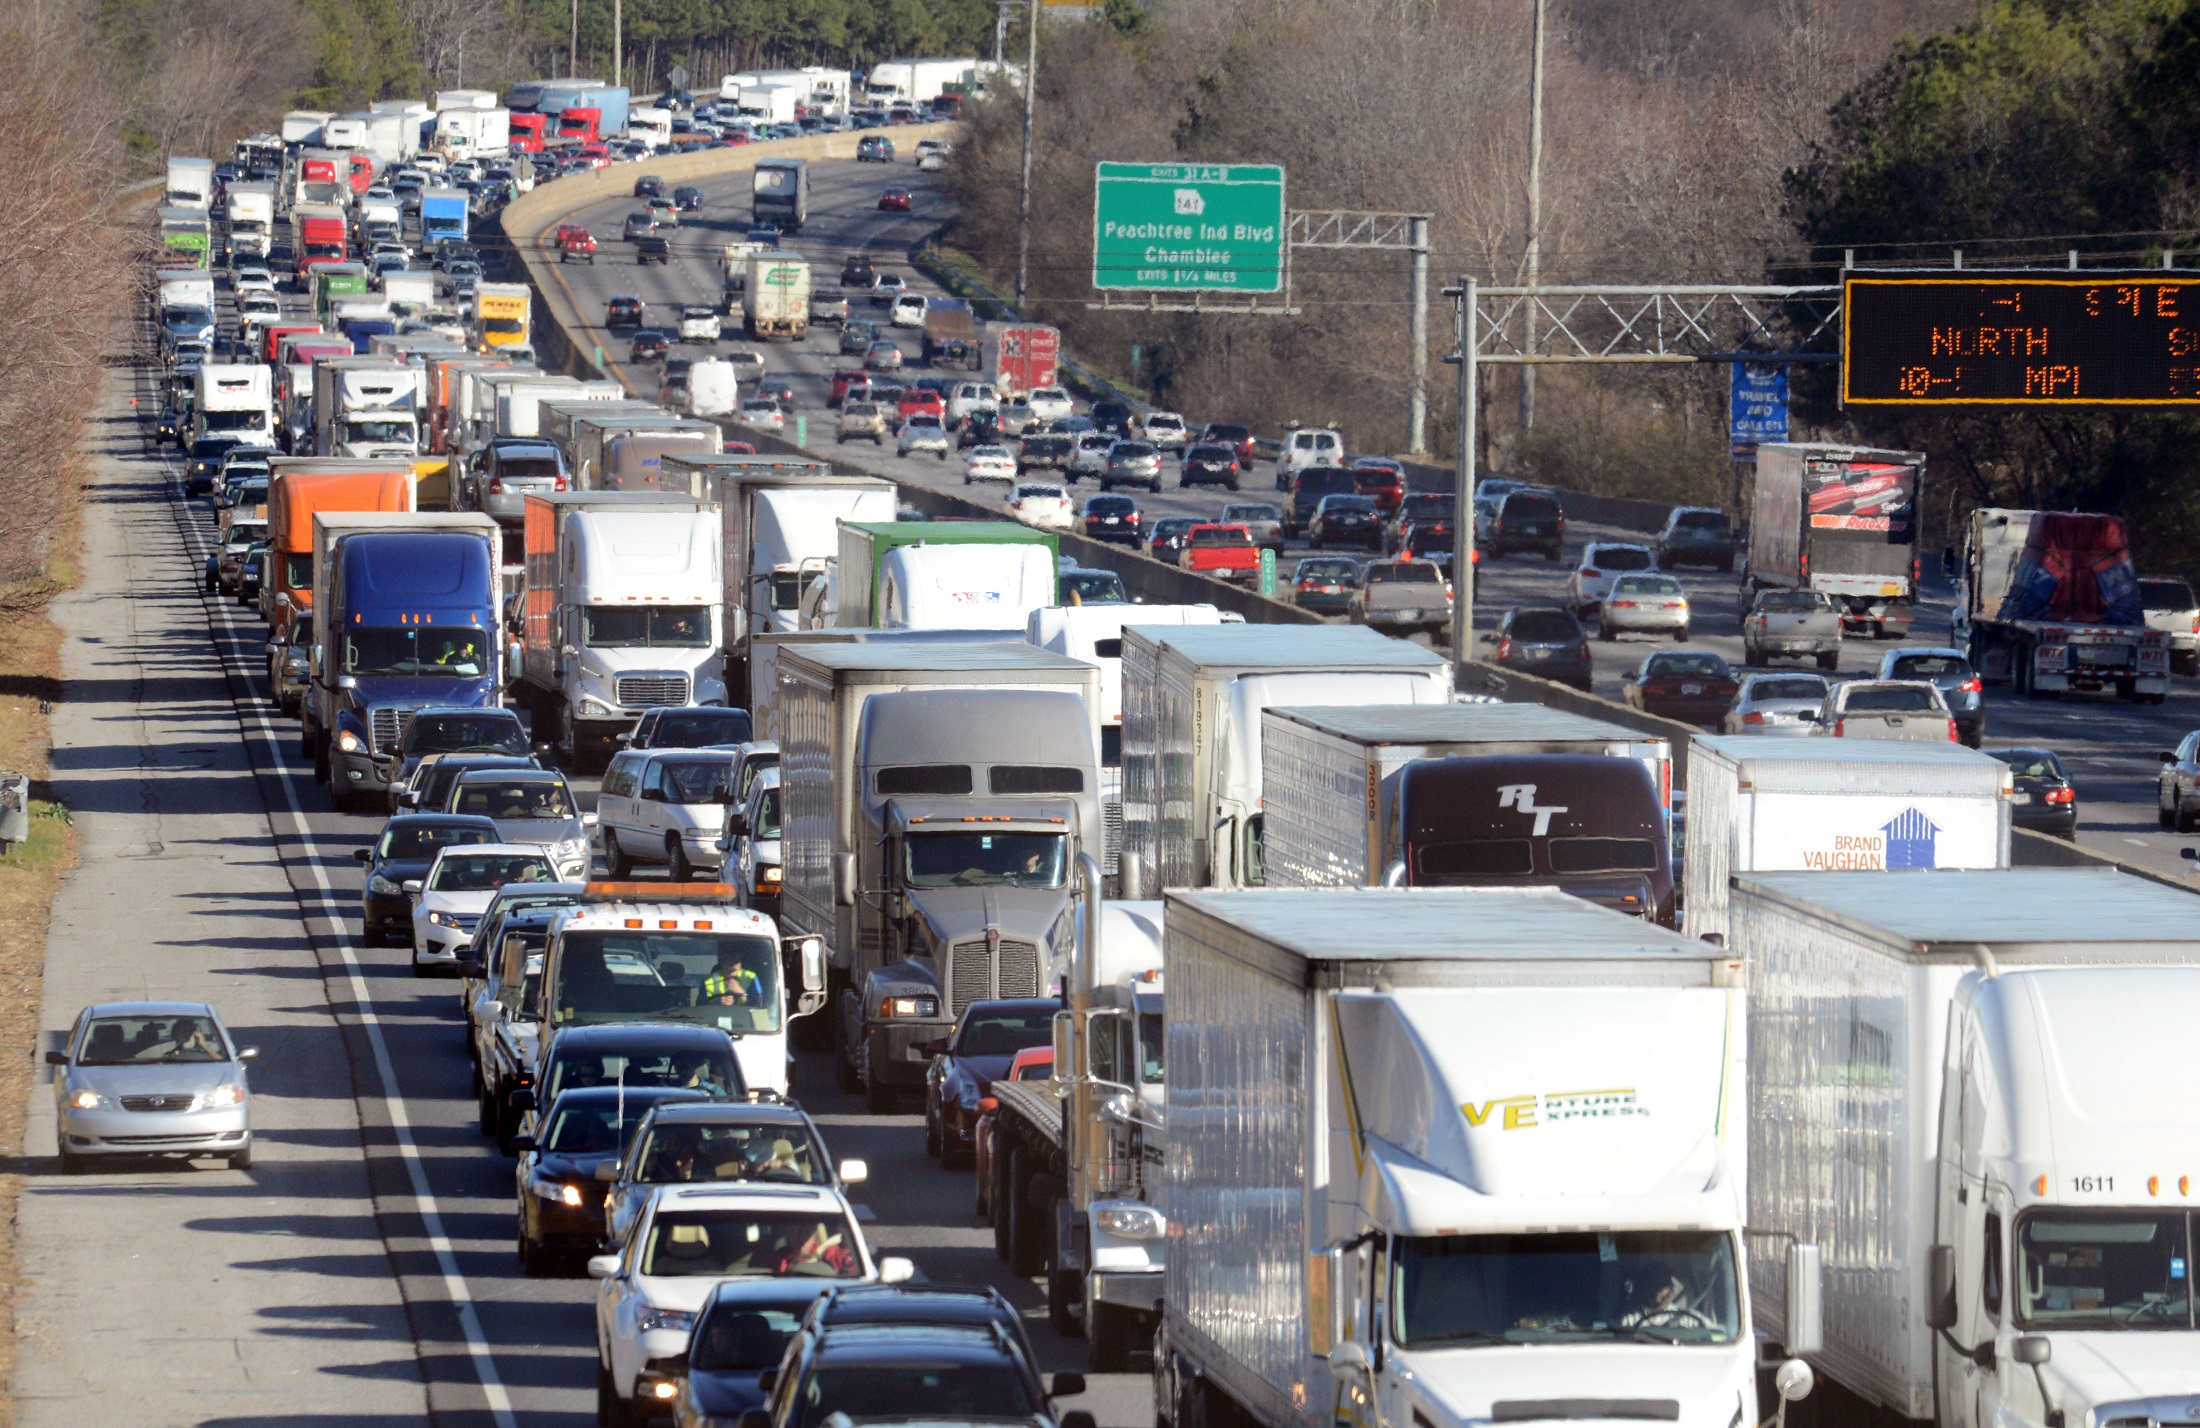 Traffic snarls on I-285 westbound due to a midday accident. Photo by Kent D. Johnson / AJC